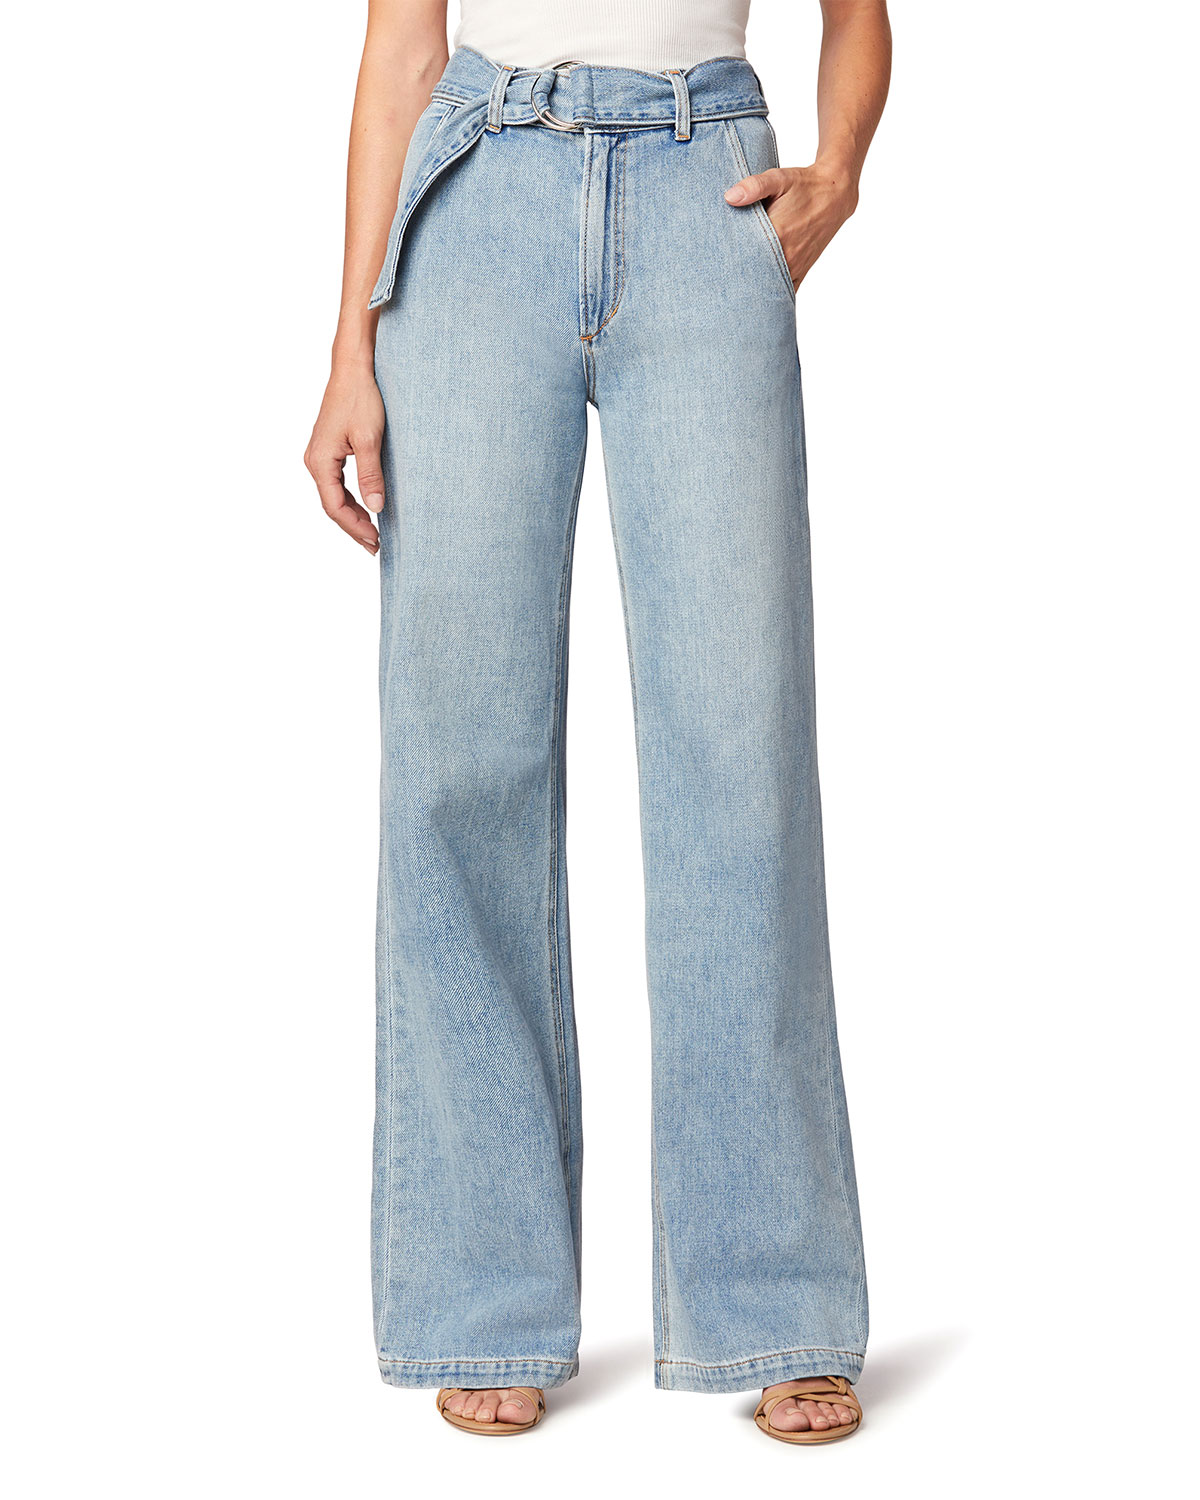 The Belted Wide-Leg Jeans